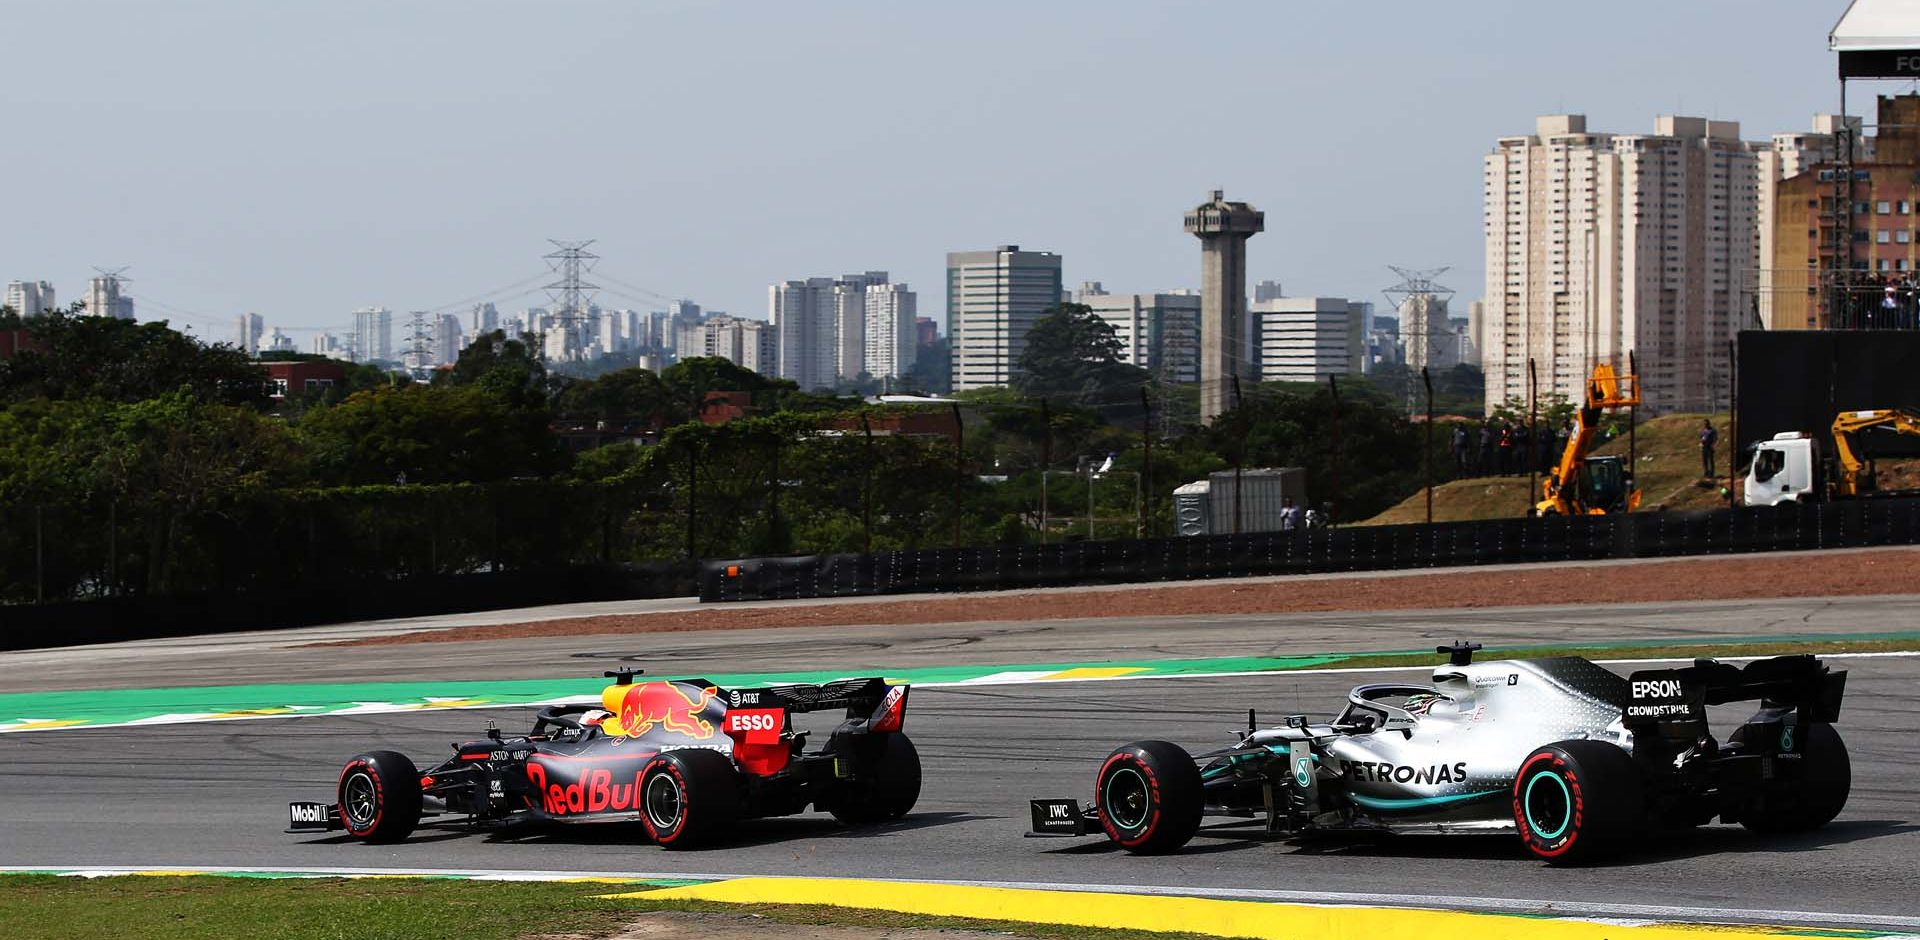 SAO PAULO, BRAZIL - NOVEMBER 17: Max Verstappen of the Netherlands driving the (33) Aston Martin Red Bull Racing RB15 leads Lewis Hamilton of Great Britain driving the (44) Mercedes AMG Petronas F1 Team Mercedes W10 on track during the F1 Grand Prix of Brazil at Autodromo Jose Carlos Pace on November 17, 2019 in Sao Paulo, Brazil. (Photo by Charles Coates/Getty Images) // Getty Images / Red Bull Content Pool  // AP-227D2THXW1W11 // Usage for editorial use only //